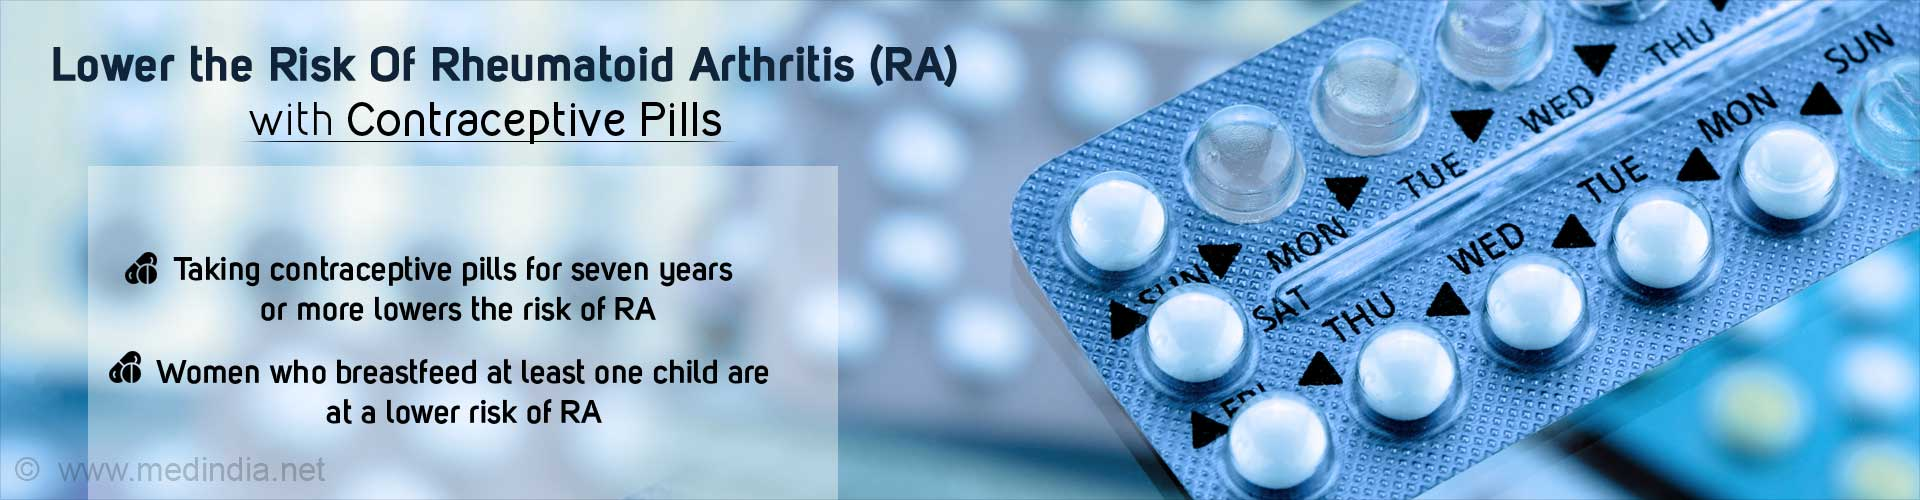 Contraceptive Pills Lower The Risk Of Rheumatoid Arthritis